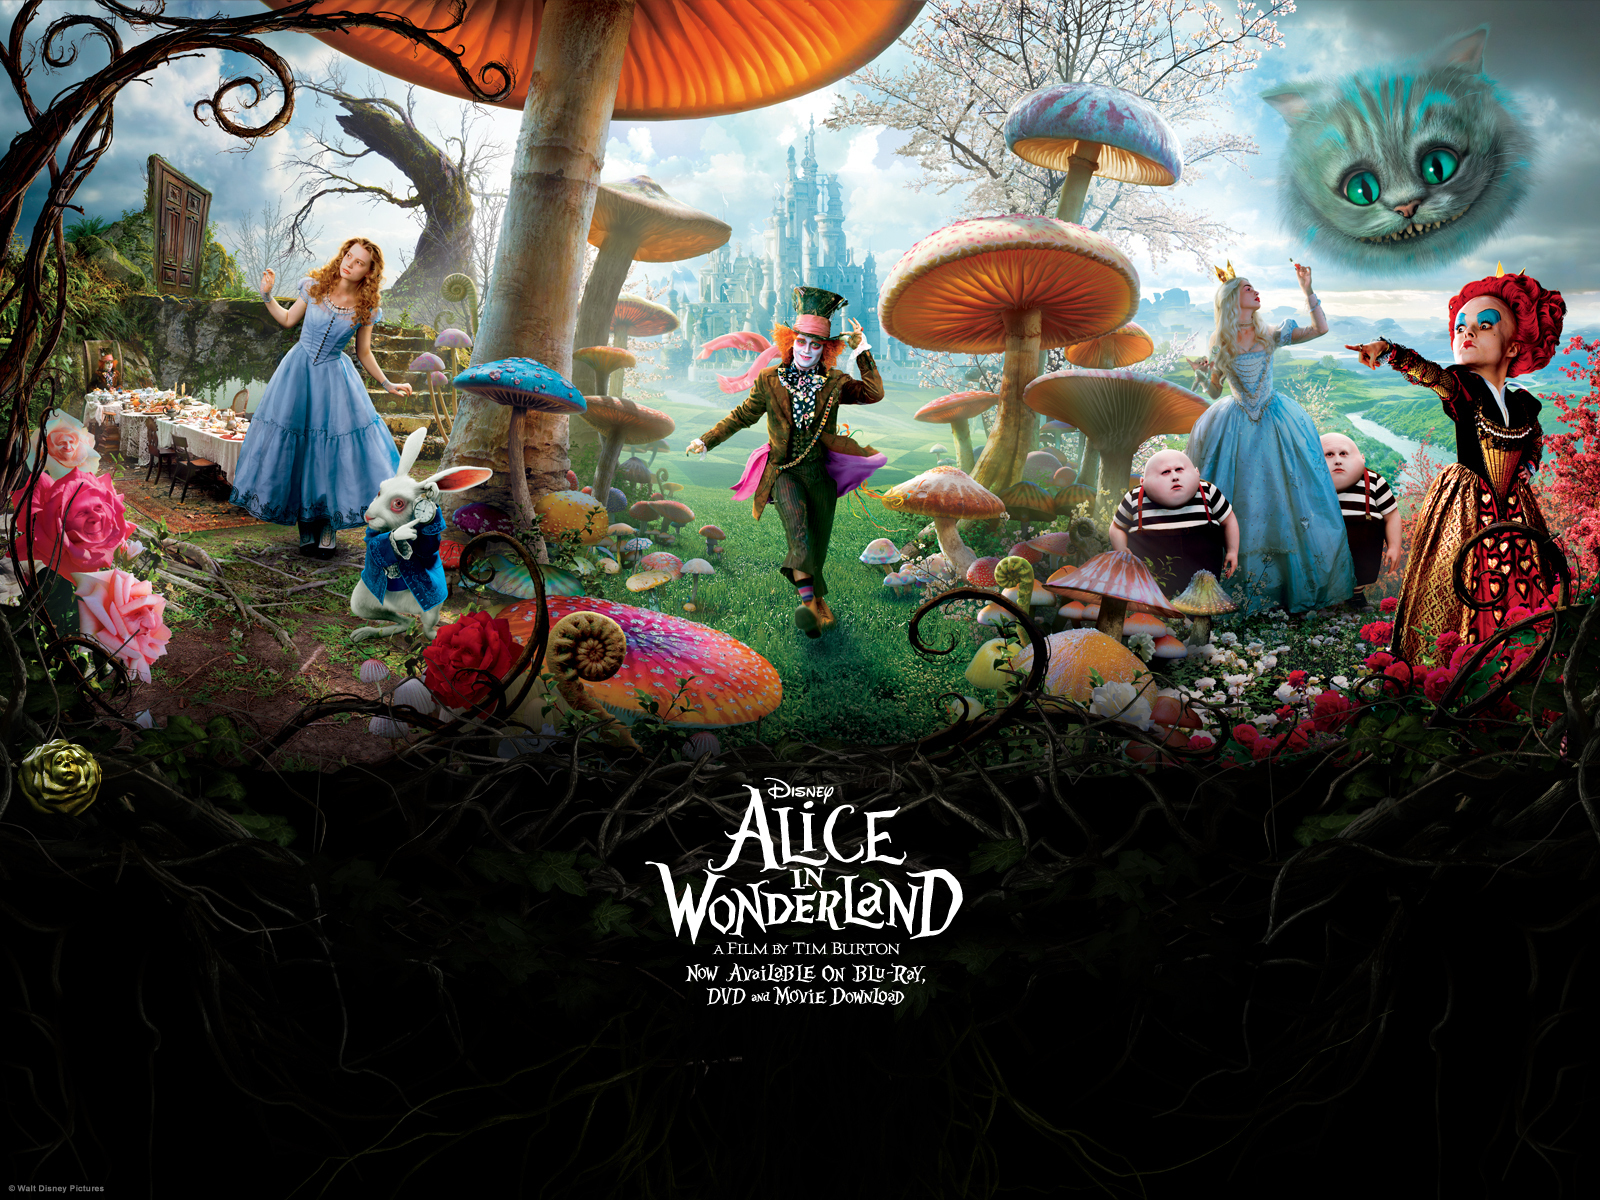 Alice In Wonderland Quotes Wallpaper. QuotesGram